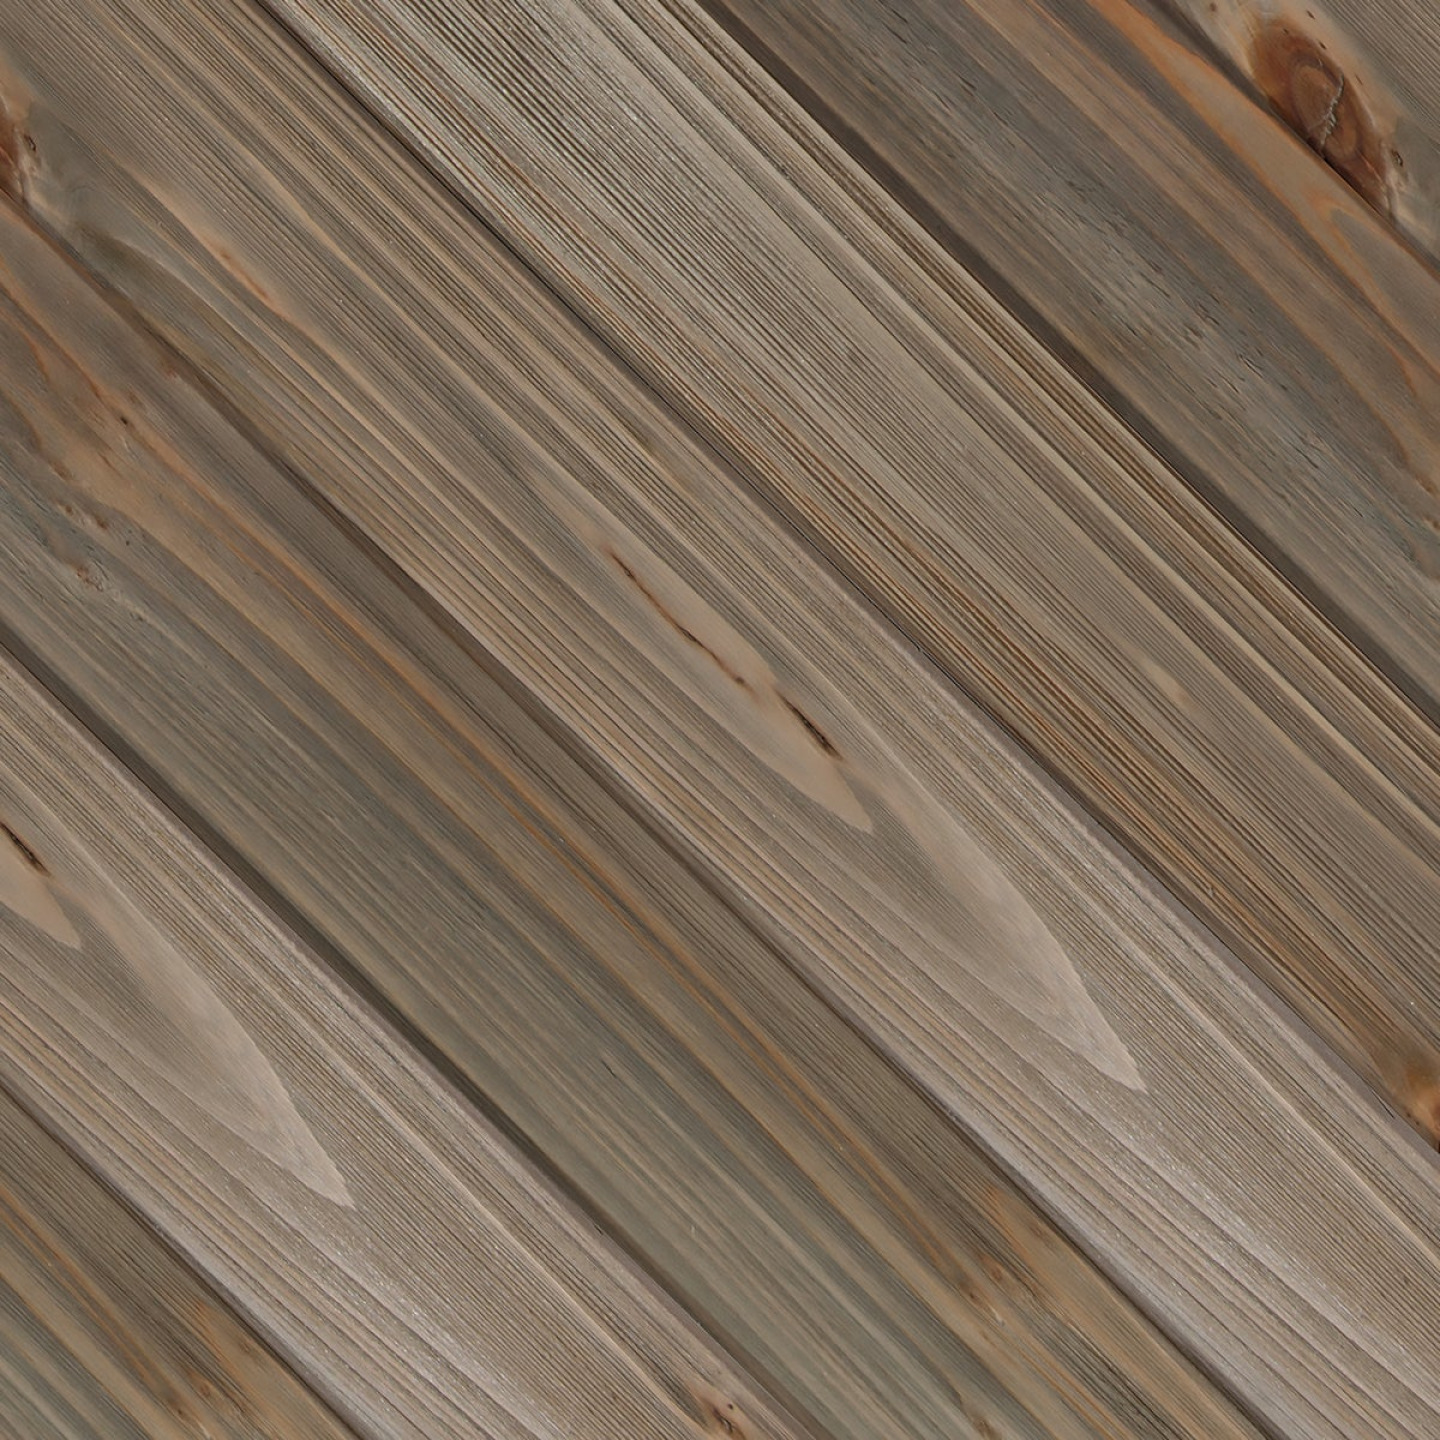 Global Product Sourcing 3-1/2 In. W. x 1/4 In. Thick Solid Wood Gray Reclaimed Wood Wall Plank Image 1